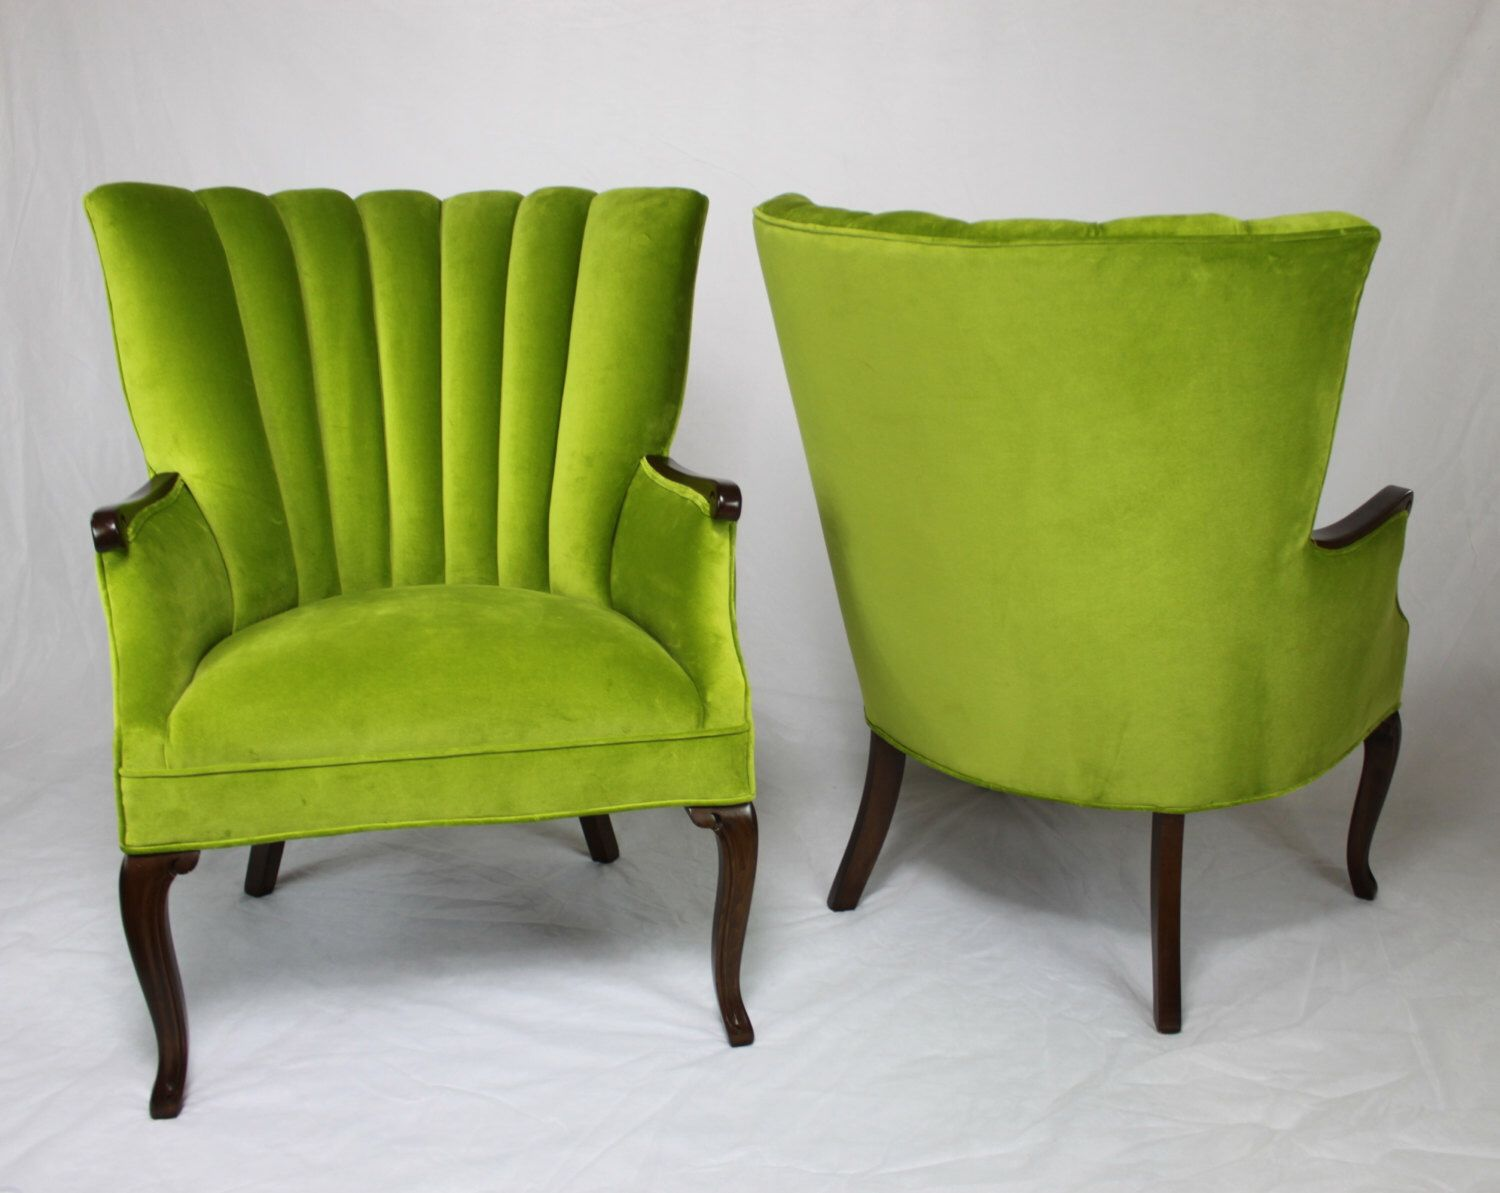 Beautiful Apple Green Channel Back Wing Back Chairs Vintage Chairs With New  Upholstery And Stain Element 20 Designs